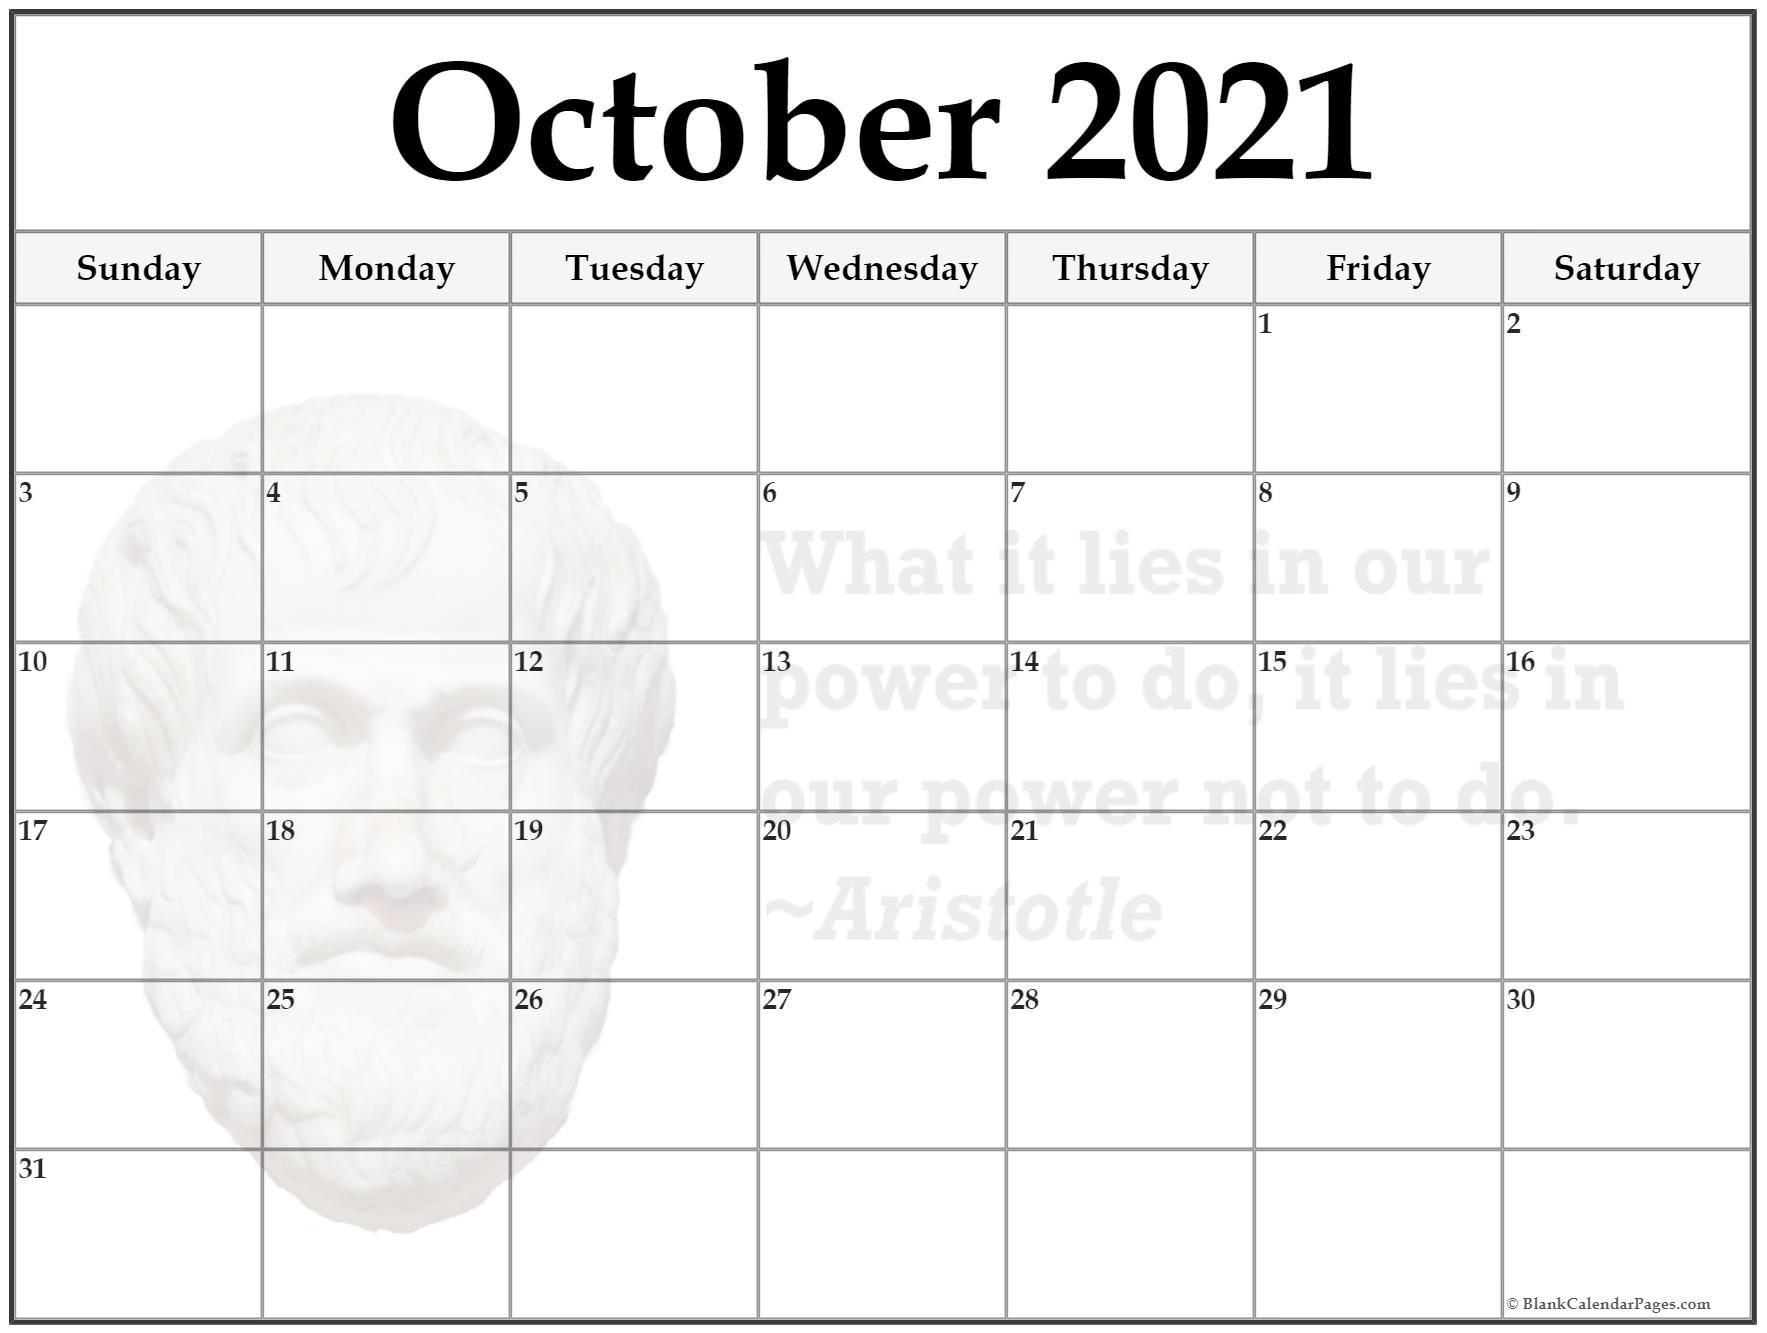 October calendar 2021What is lies in our power to do, it lies in our power not to do ~Aristotle